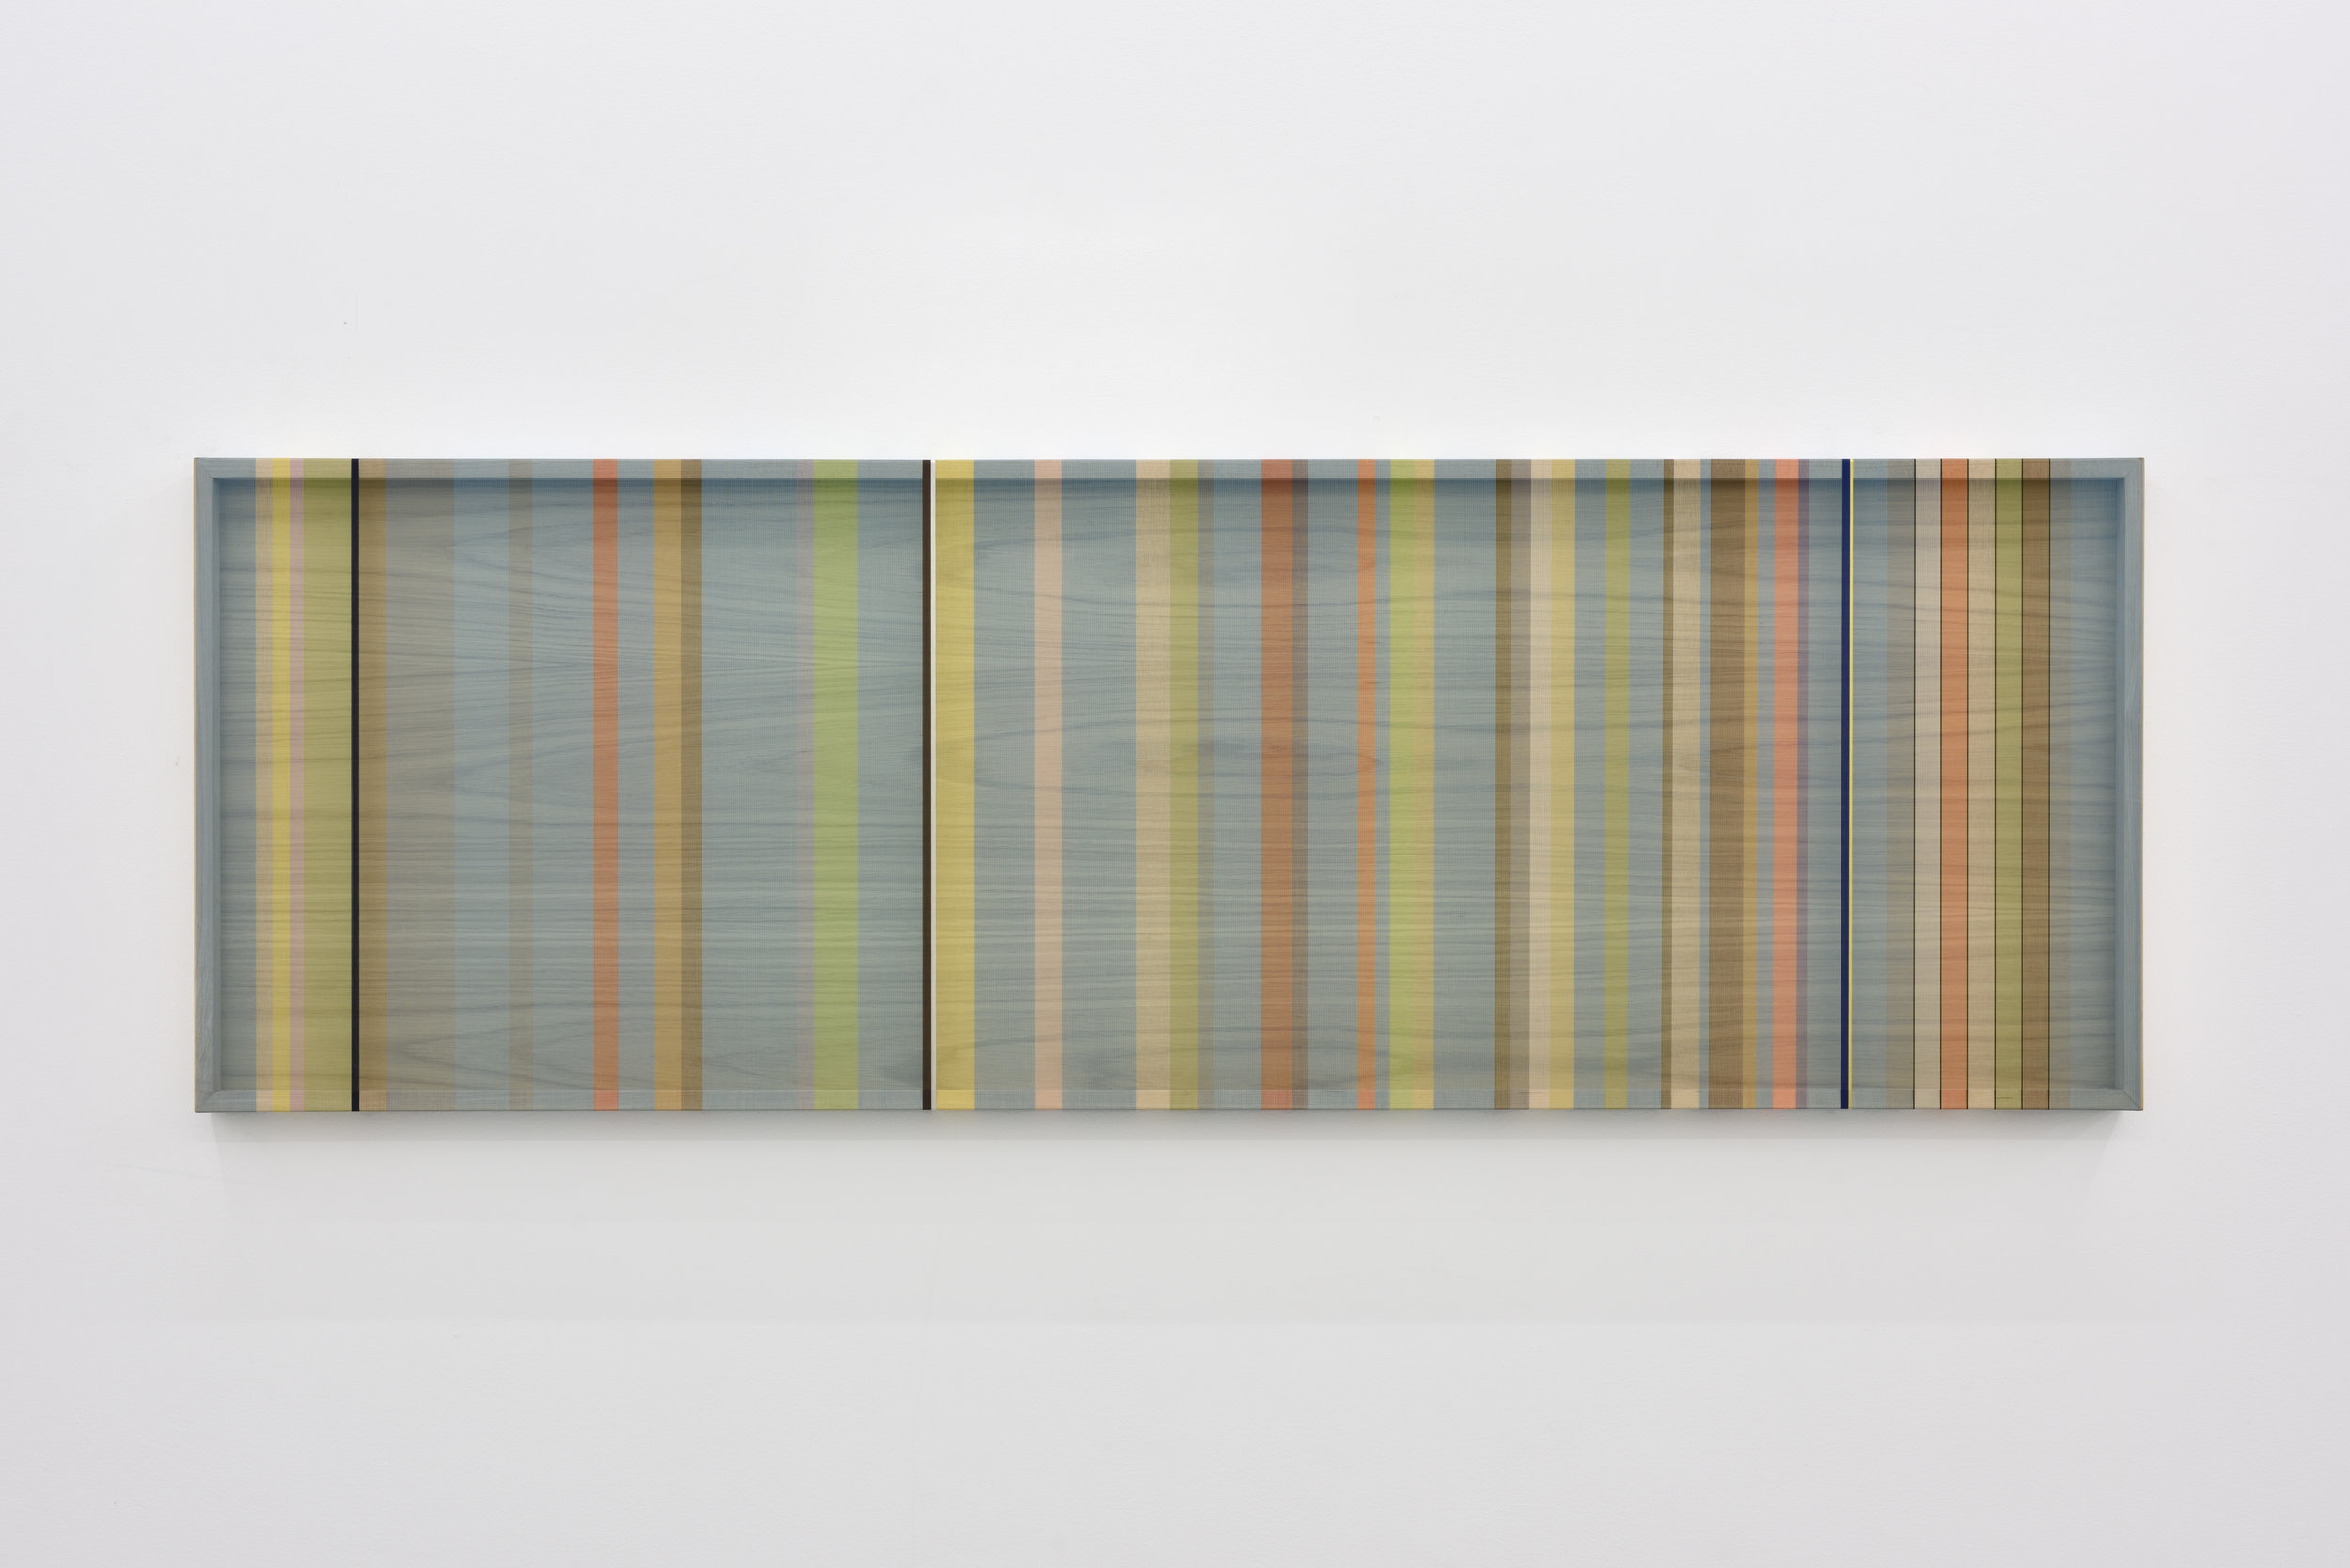 Untitled (Turquoise hovering thread), 2016 single-strand rayon and metallic thread on wood 61 x 183 cm - 24 1/32 x 72 1/16 inches